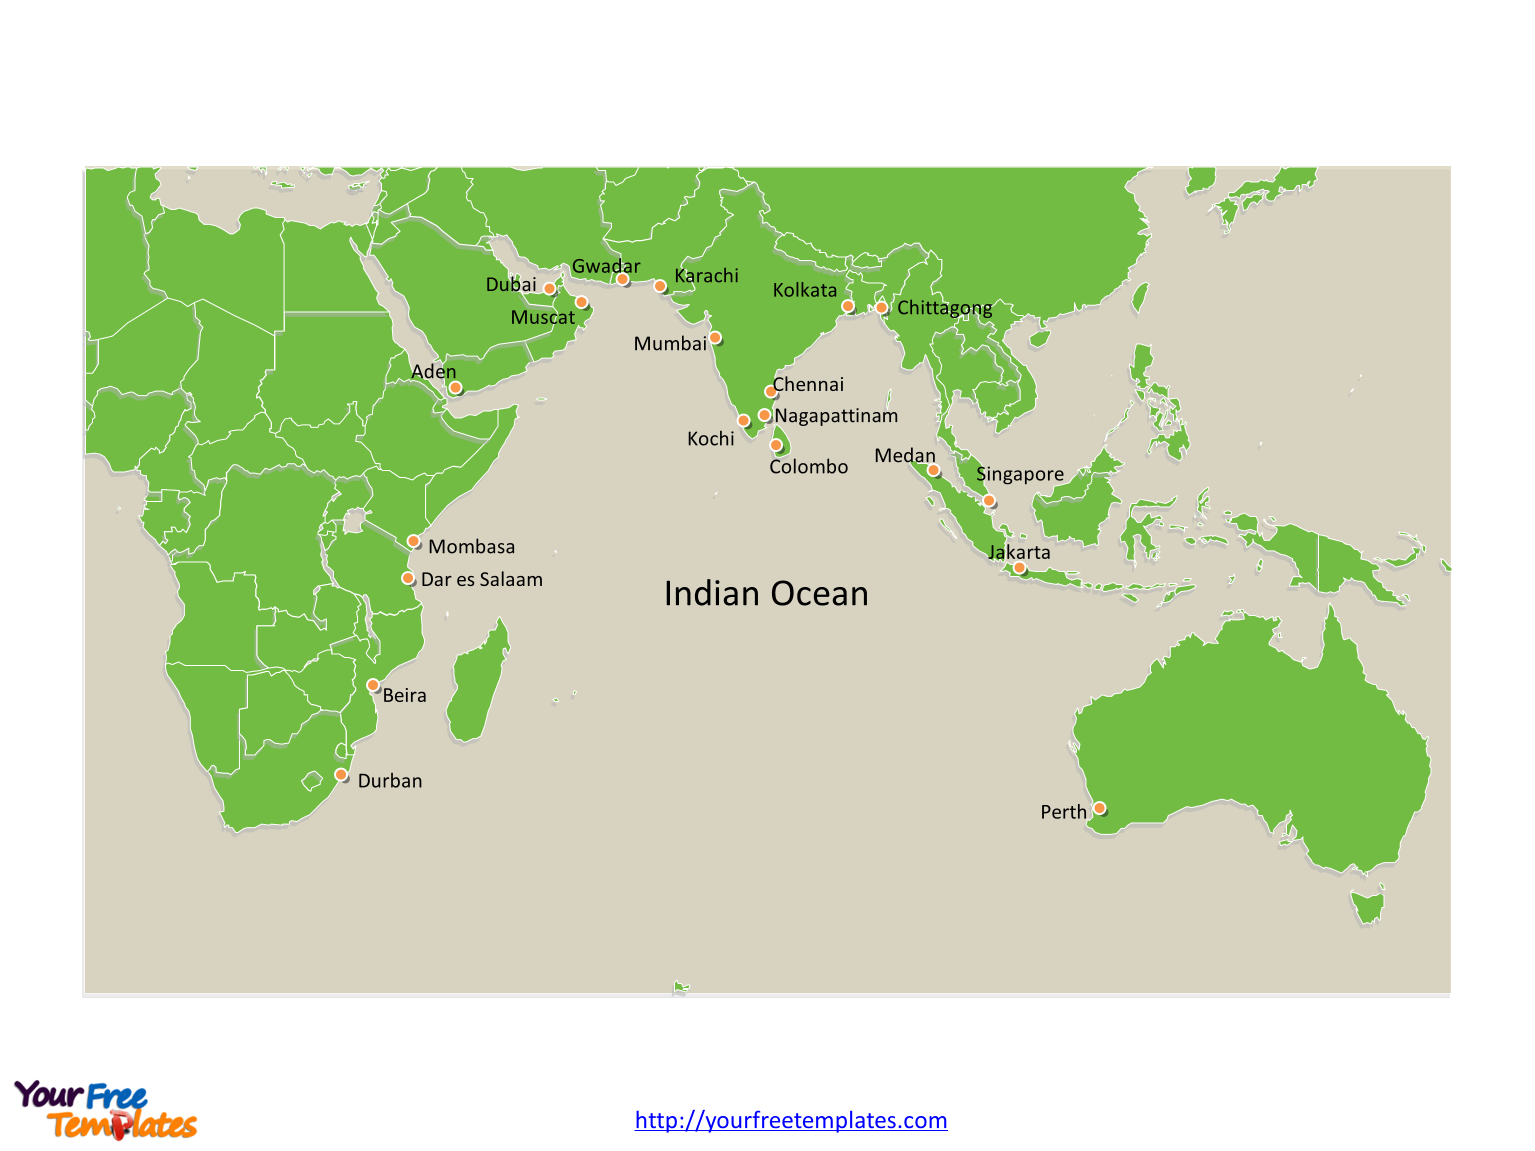 Indian Ocean map labeled major cities